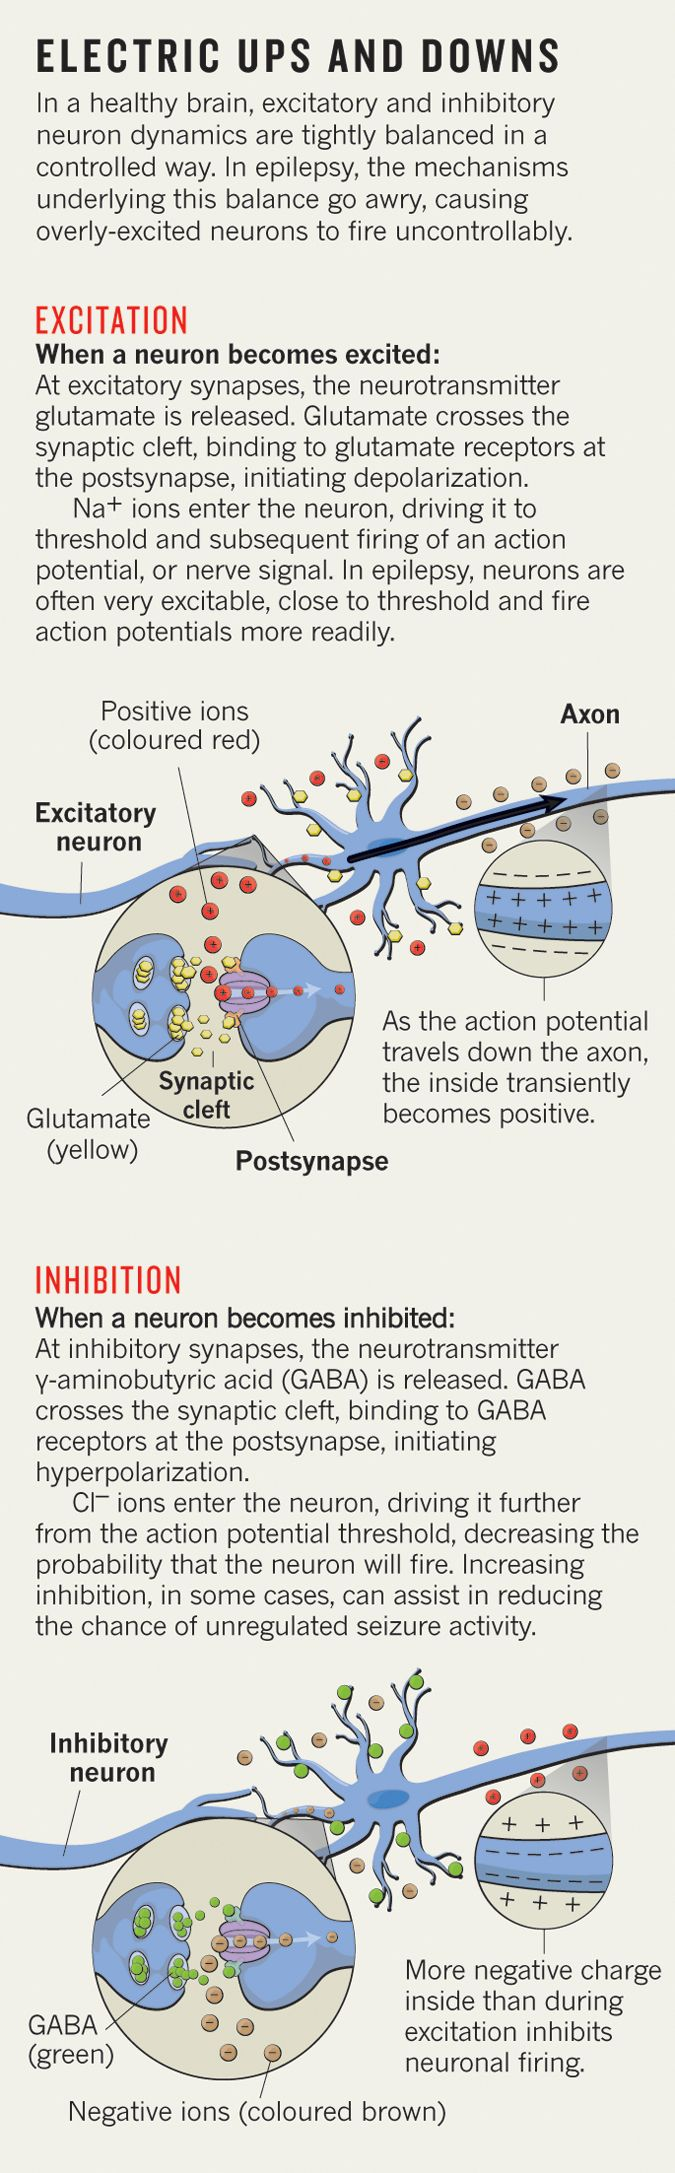 : Neurobiology: Unrestrained excitement : Nature : Nature Publishing Group